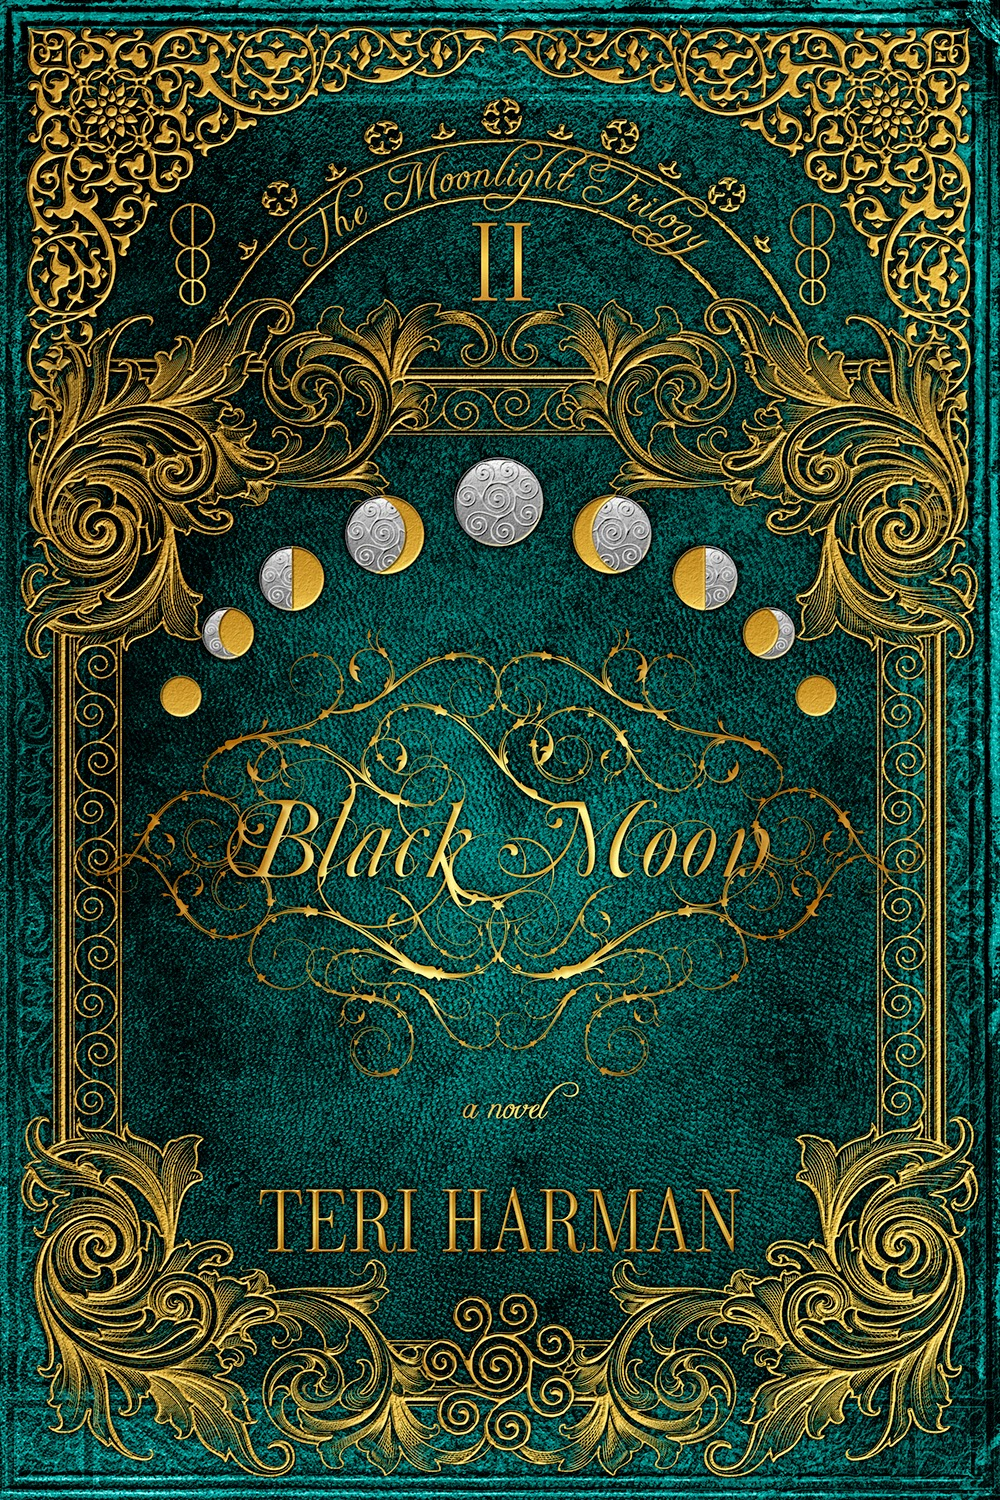 http://www.amazon.com/Black-Moon-Moonlight-Trilogy-Harman/dp/1939967937/ref=sr_1_4?s=books&ie=UTF8&qid=1409955528&sr=1-4&keywords=black+moon